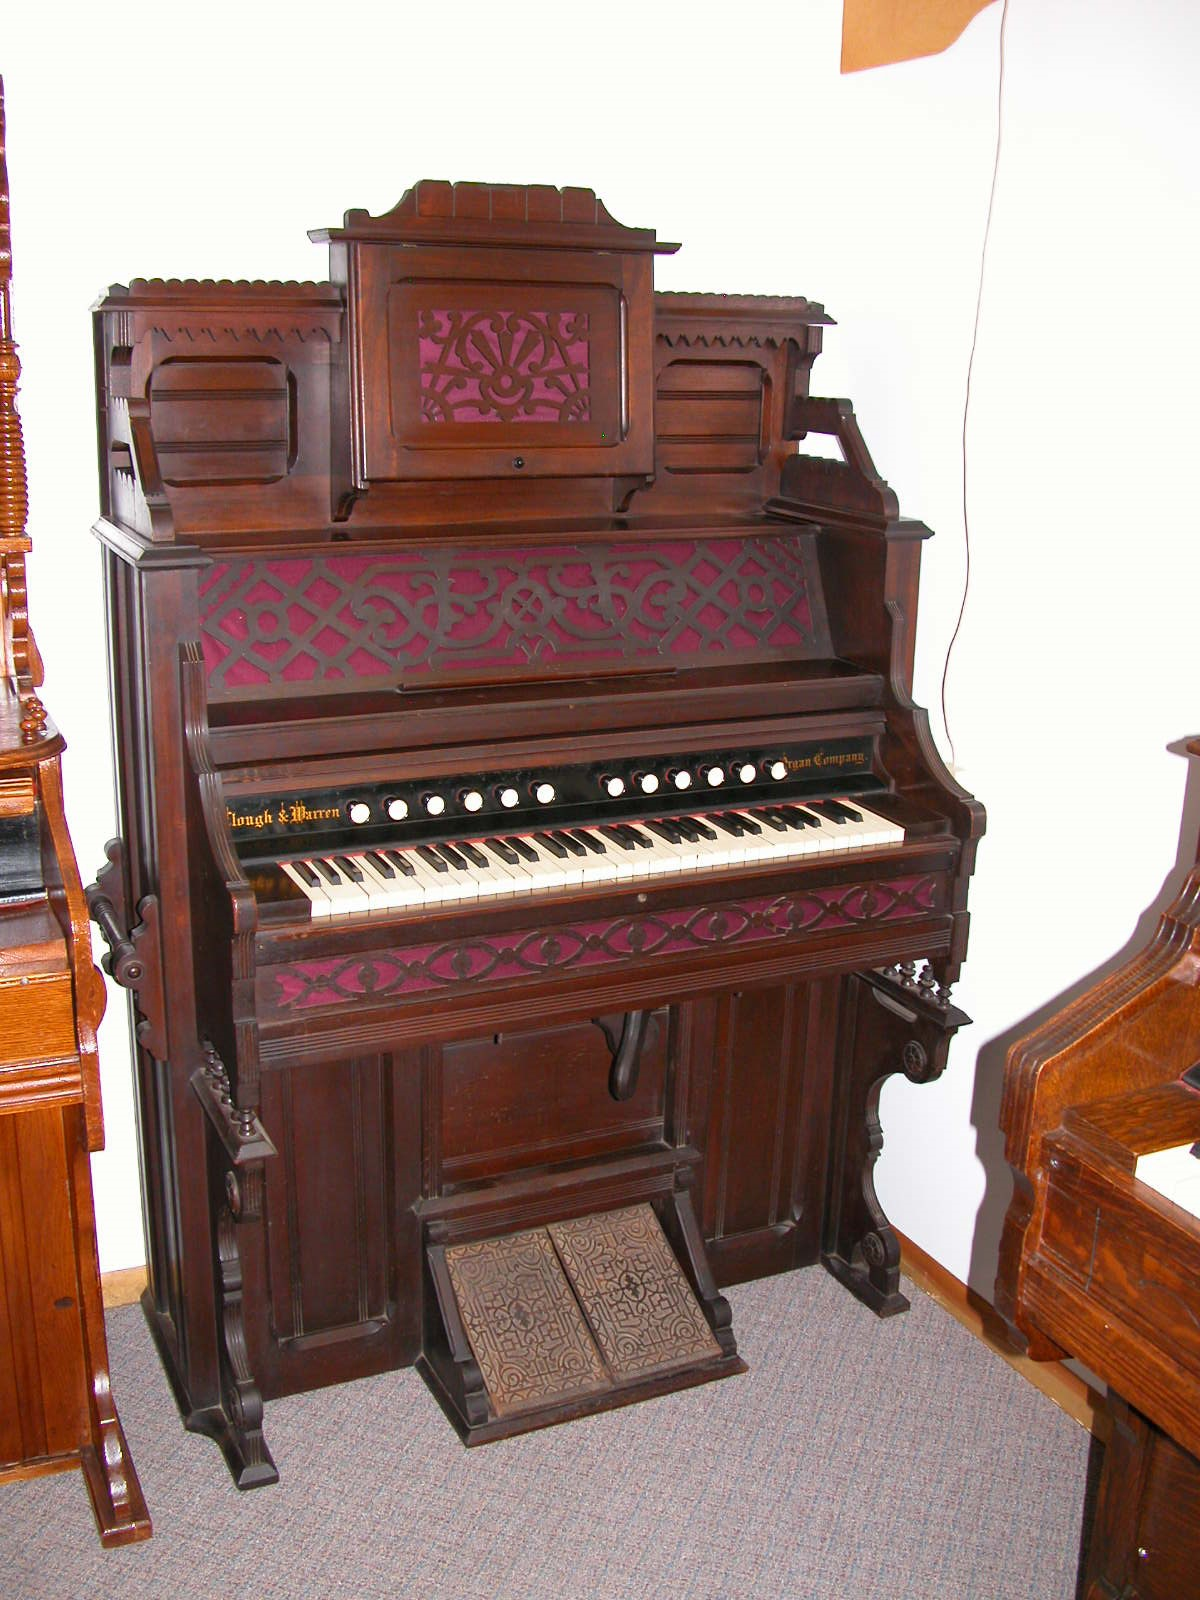 1869 Clough & Warren Organ Co. I.D. No. #22